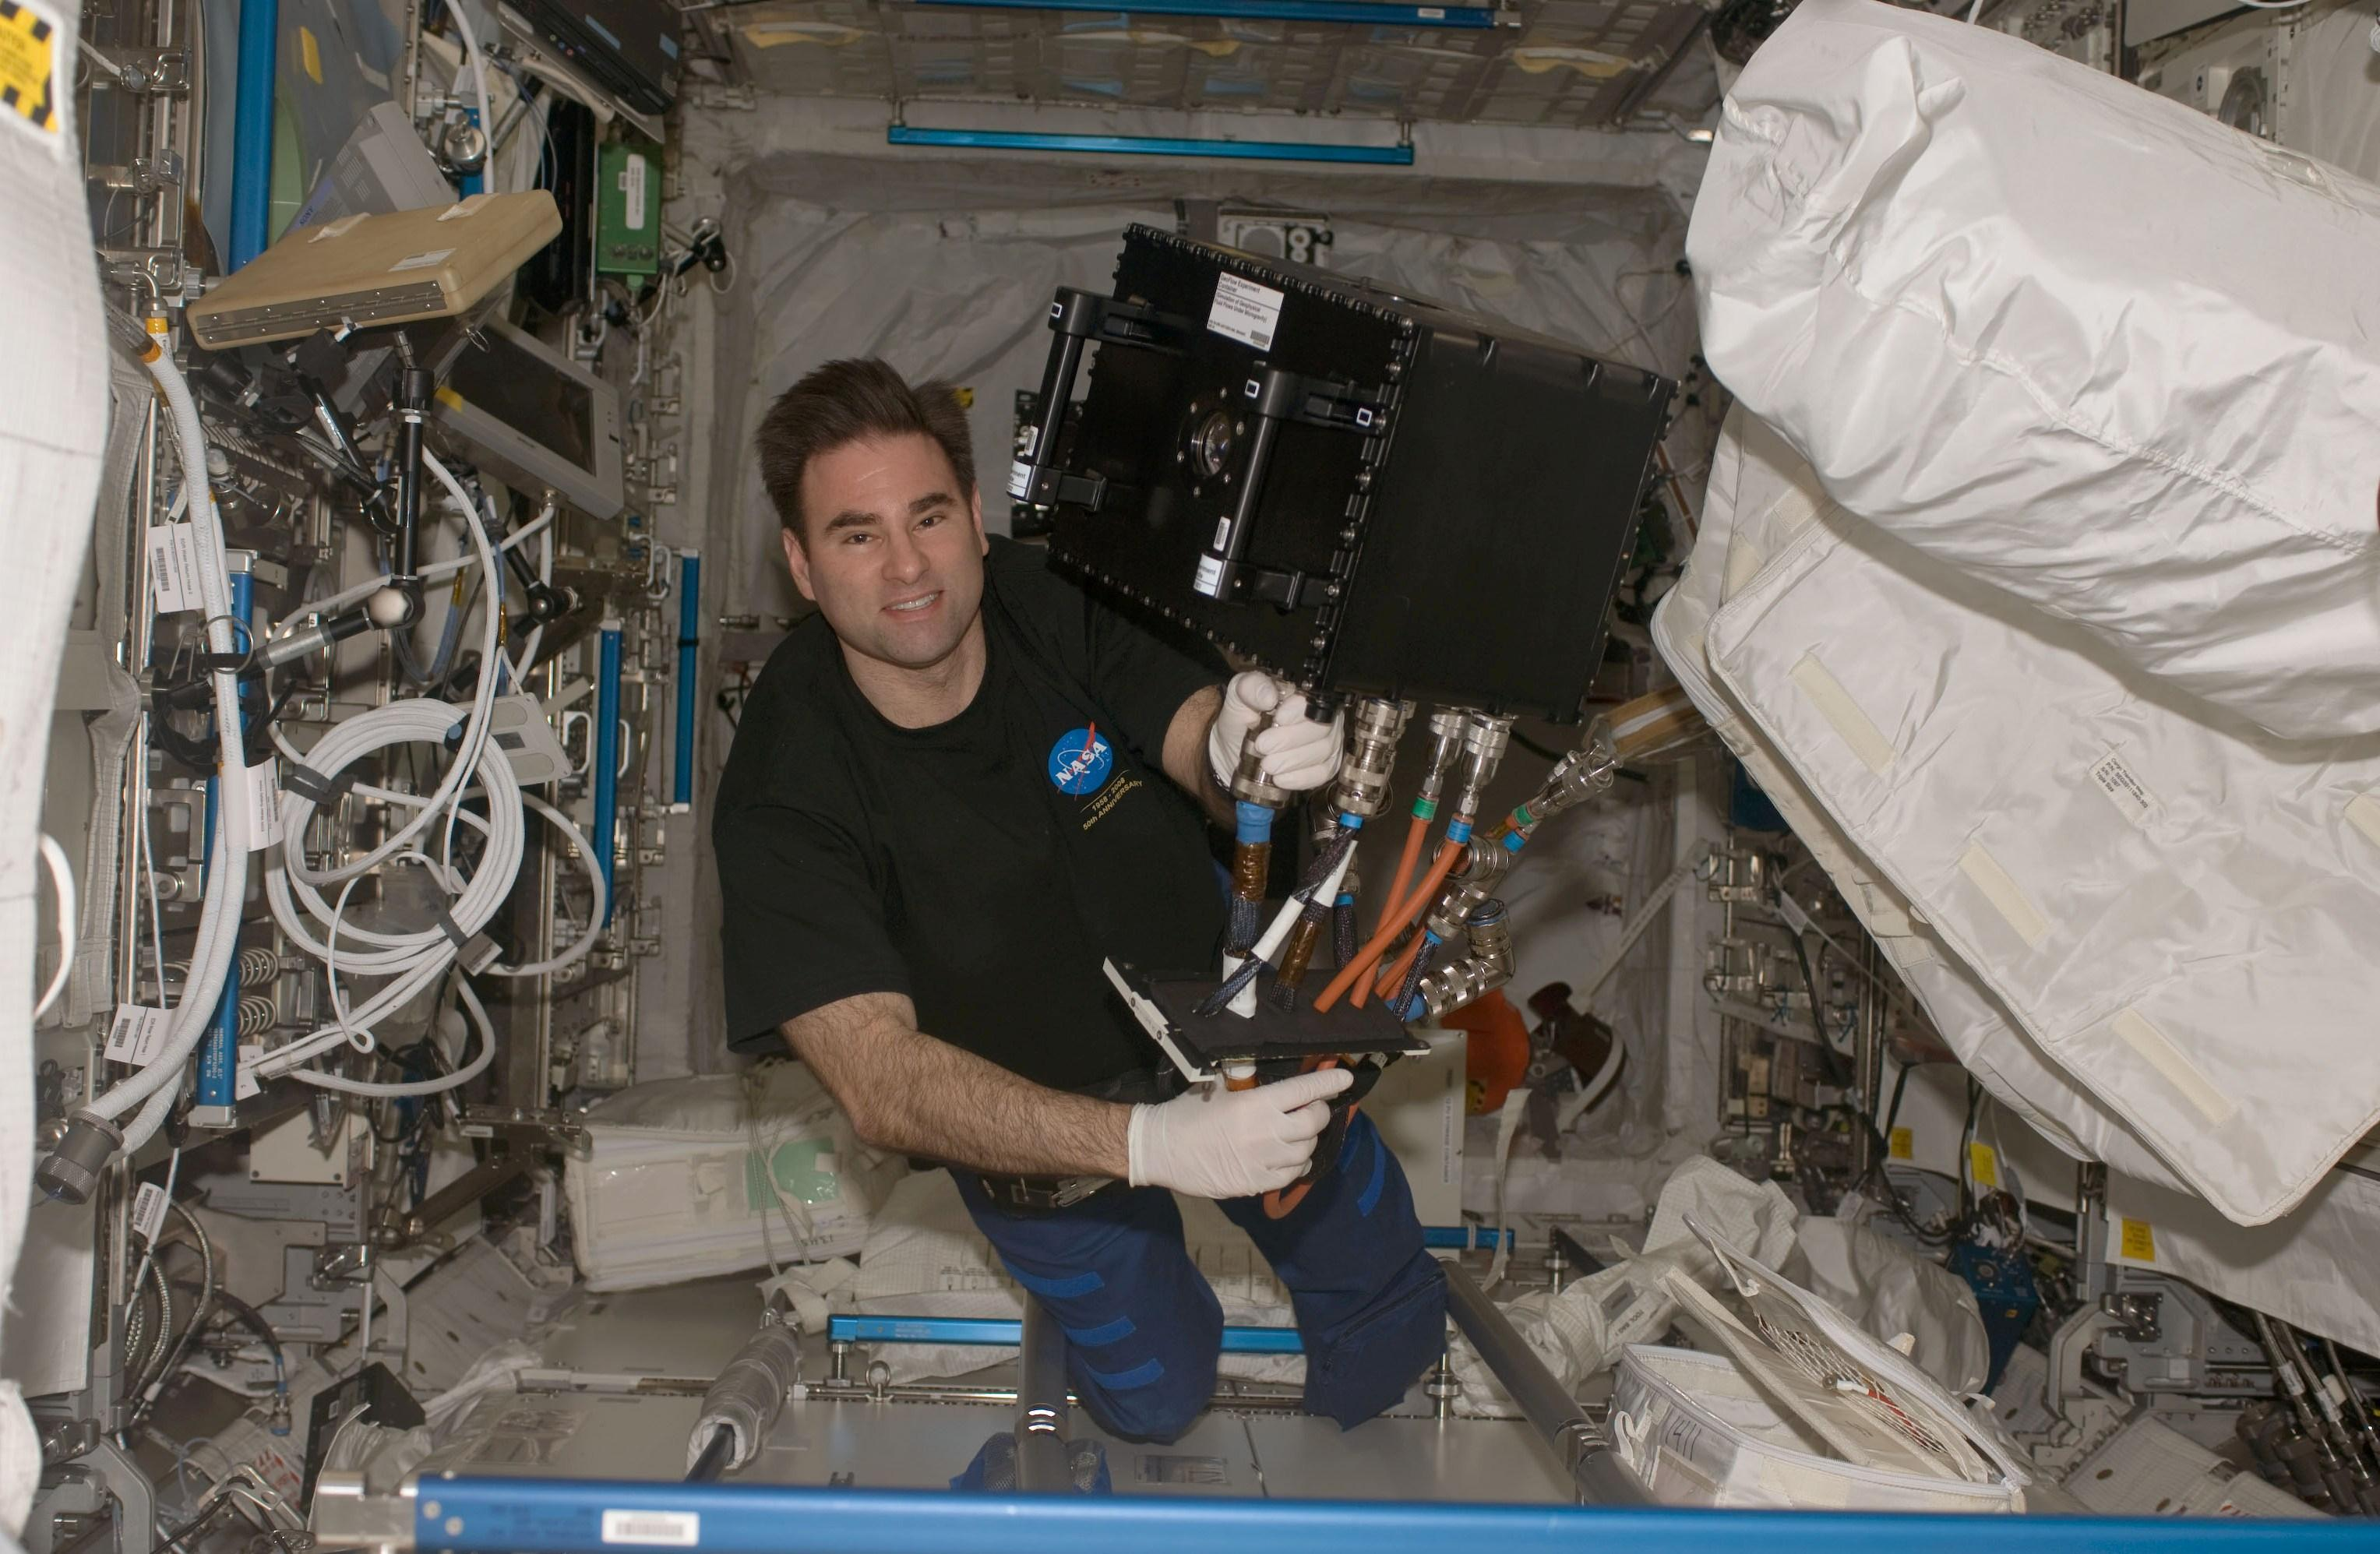 Astronaut Gregory Chamitoff as he works to install the Fluids Science Laboratory (FSL) Geosynchronous Earth Orbit (GEO) Experiment.